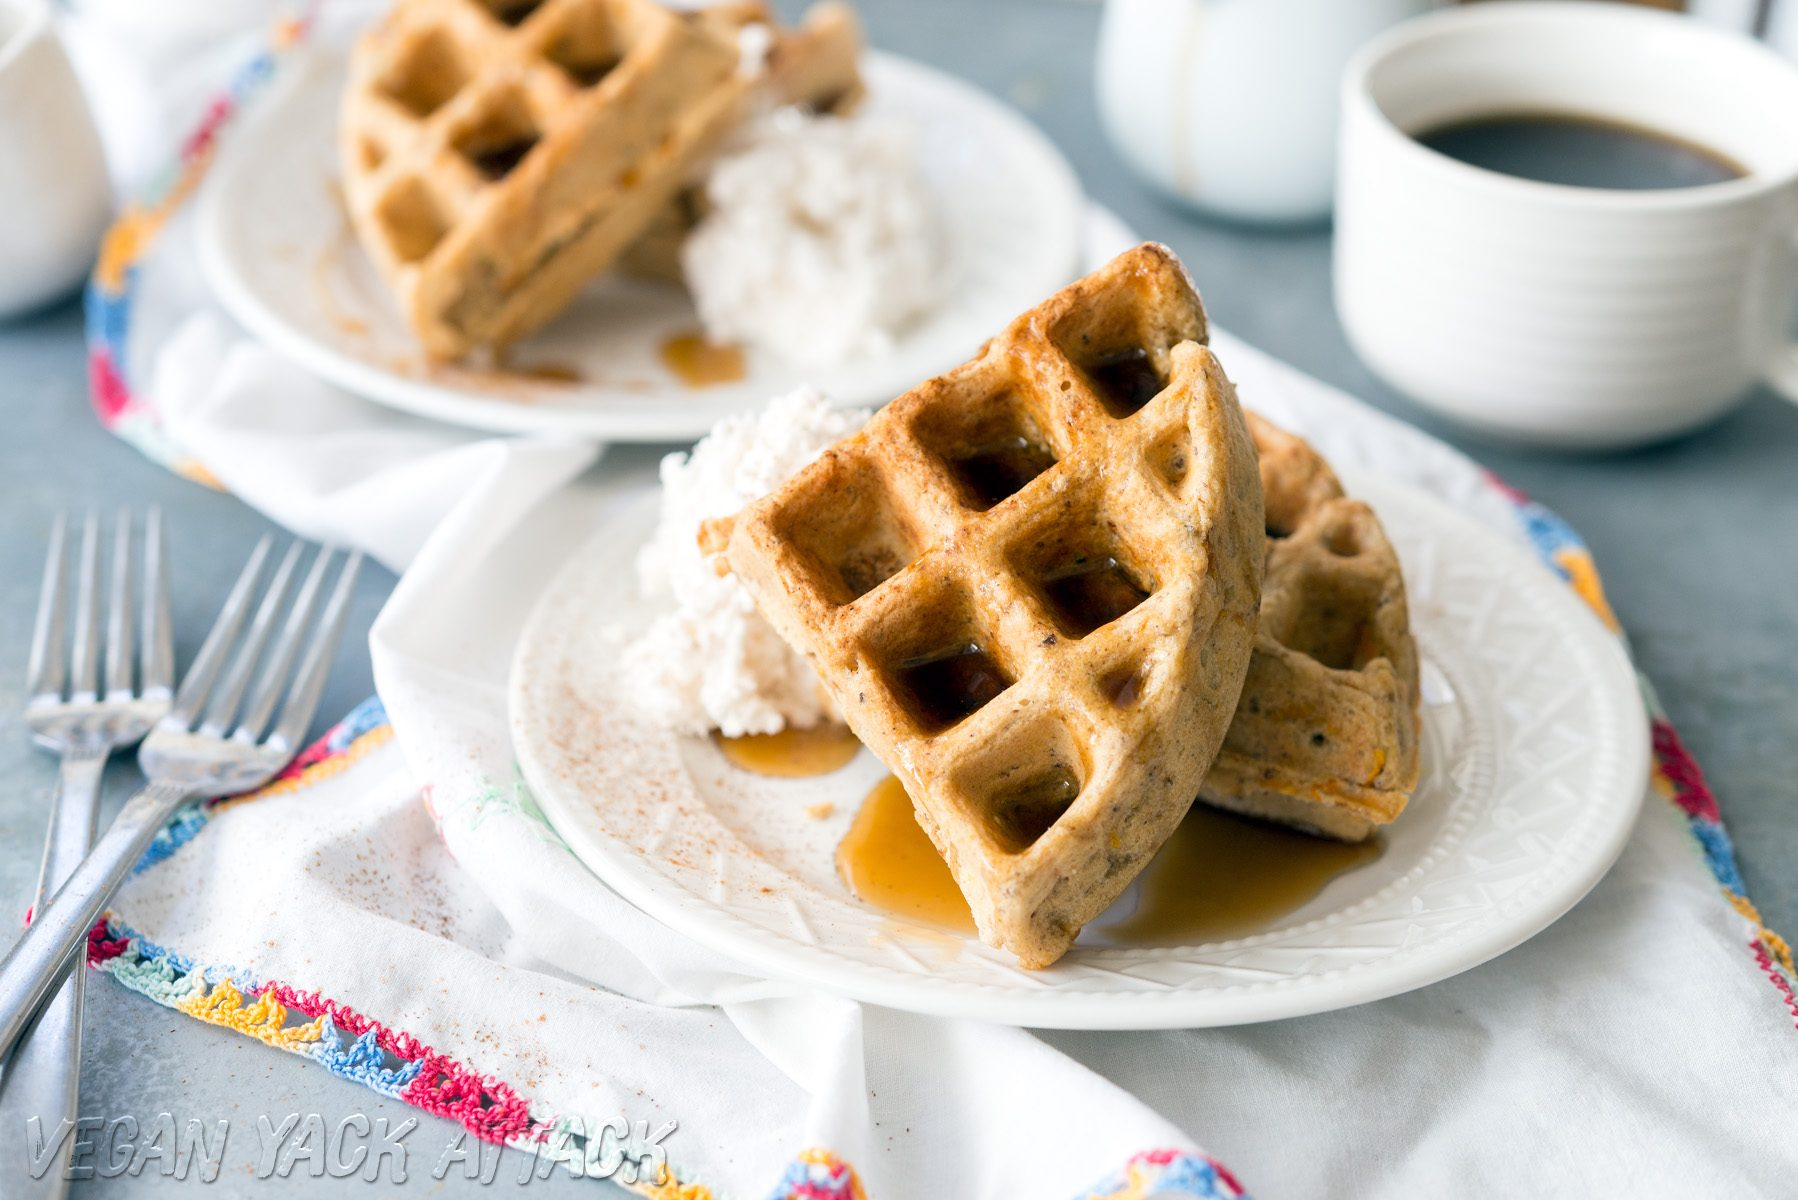 Vegan Carrot Waffles from Love & Lemons Cookbook